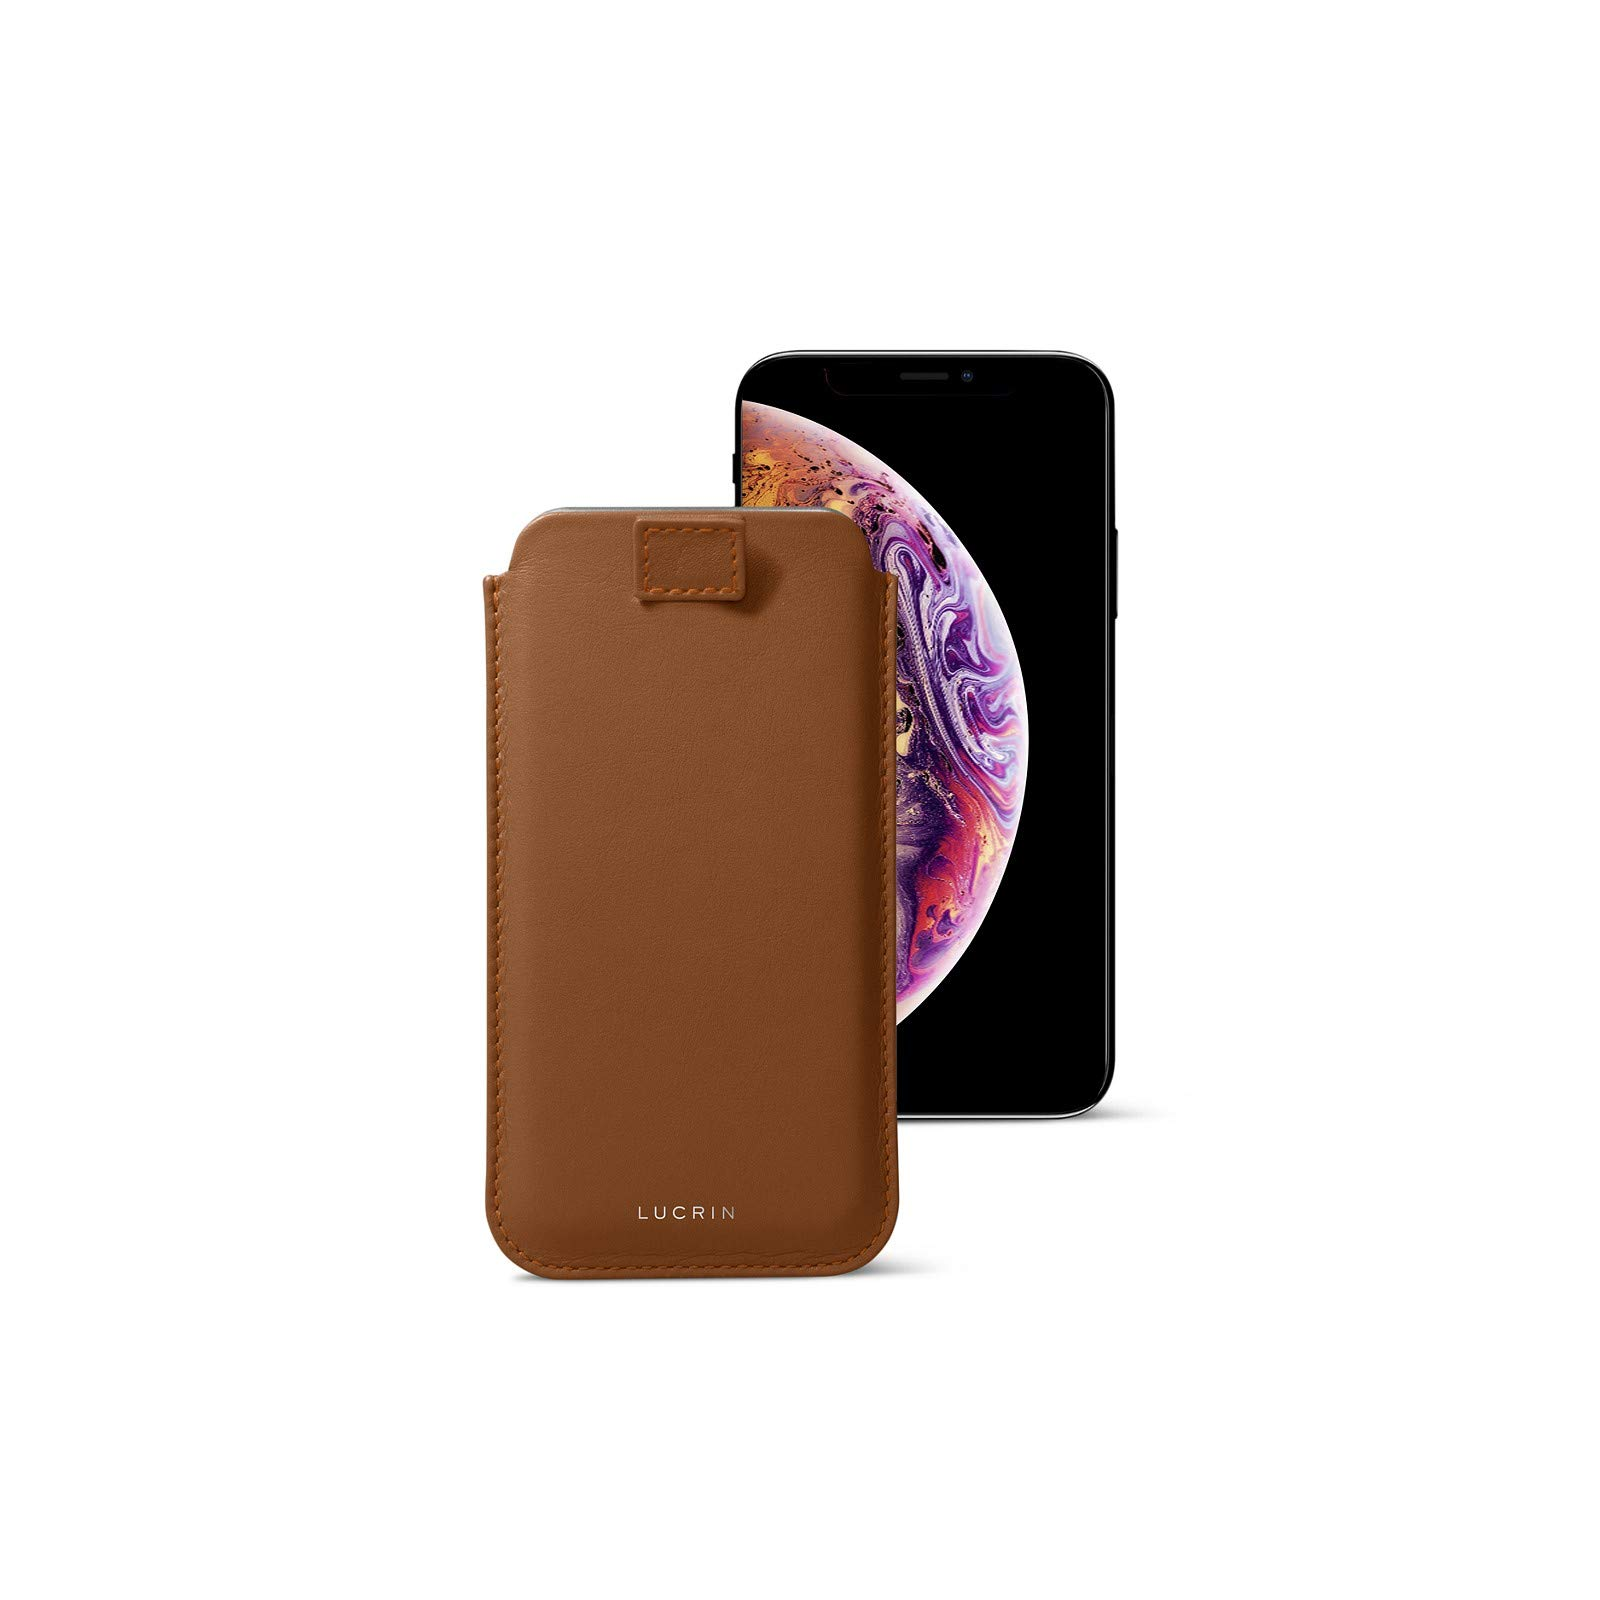 Lucrin - Pull Tab Slim Sleeve Case Compatible with iPhone Xs/iPhone X and Wireless Charging - Tan - Genuine Leather